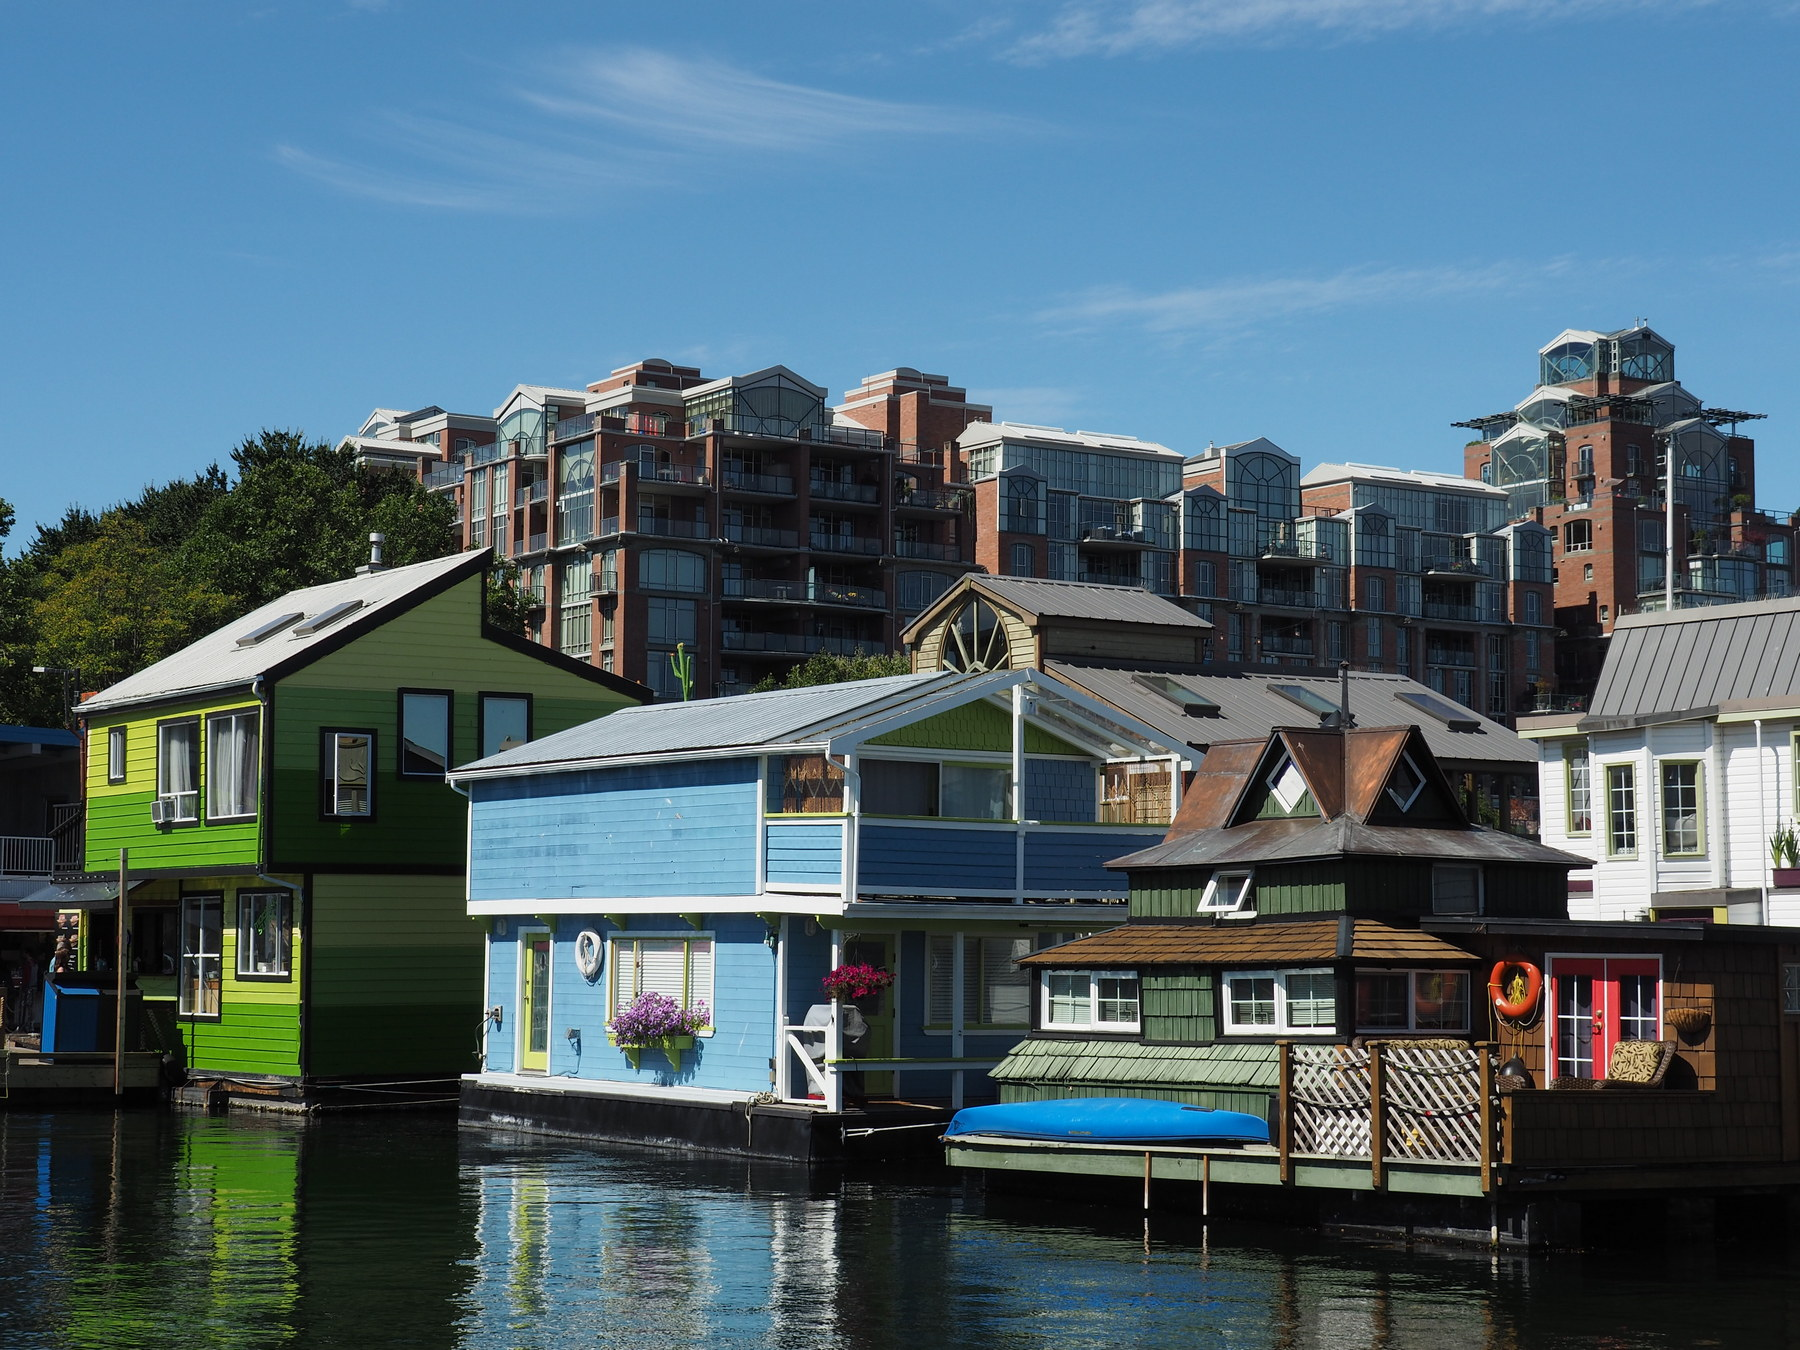 Individuelle Hausboote am Fishermans Wharf